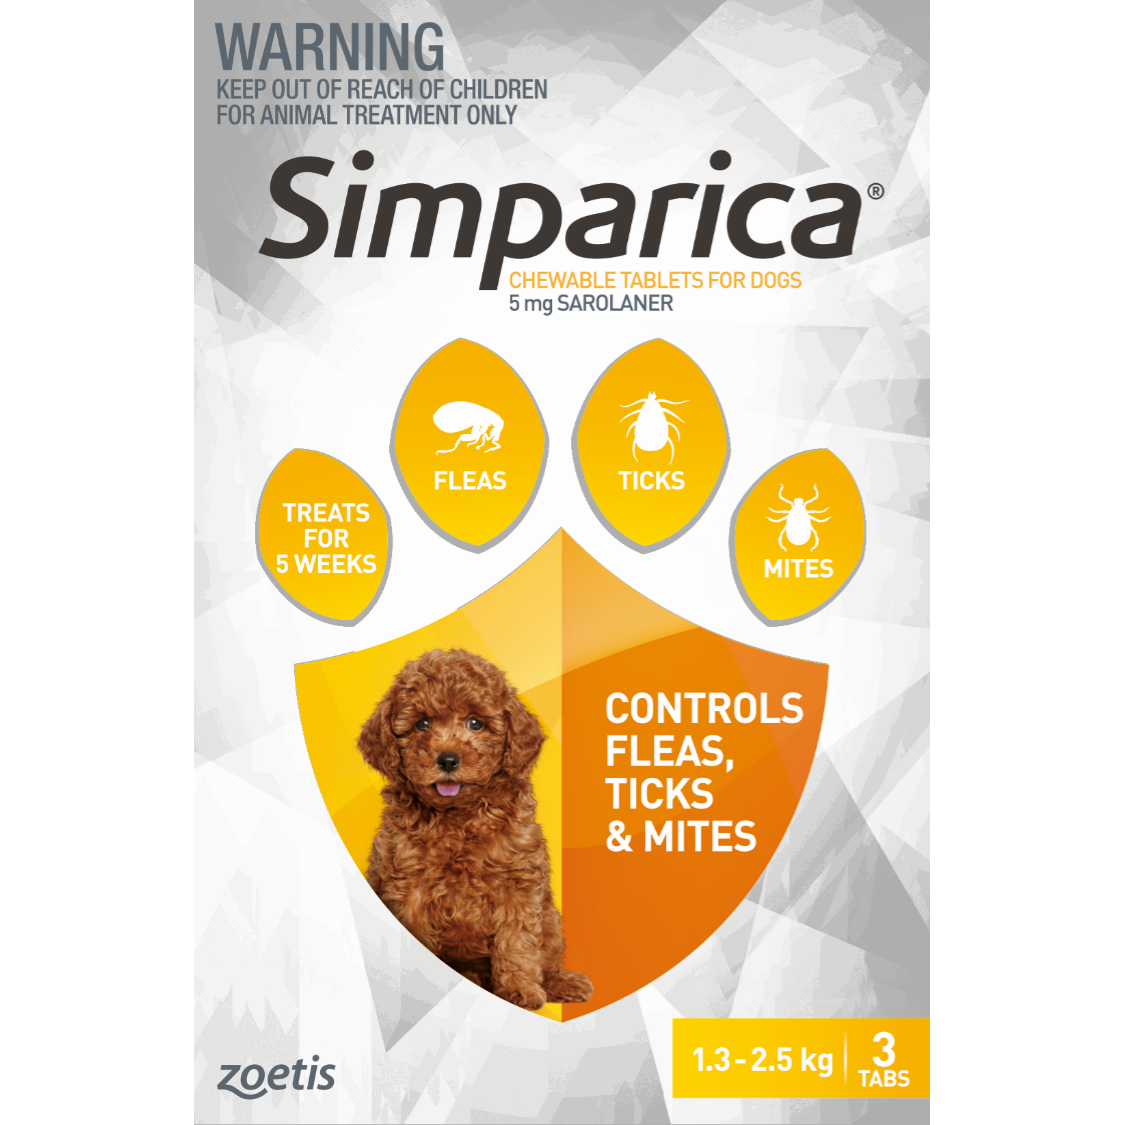 SIMPARICA Simparica Chewable Tablets for Dogs 1.3-2.5kg